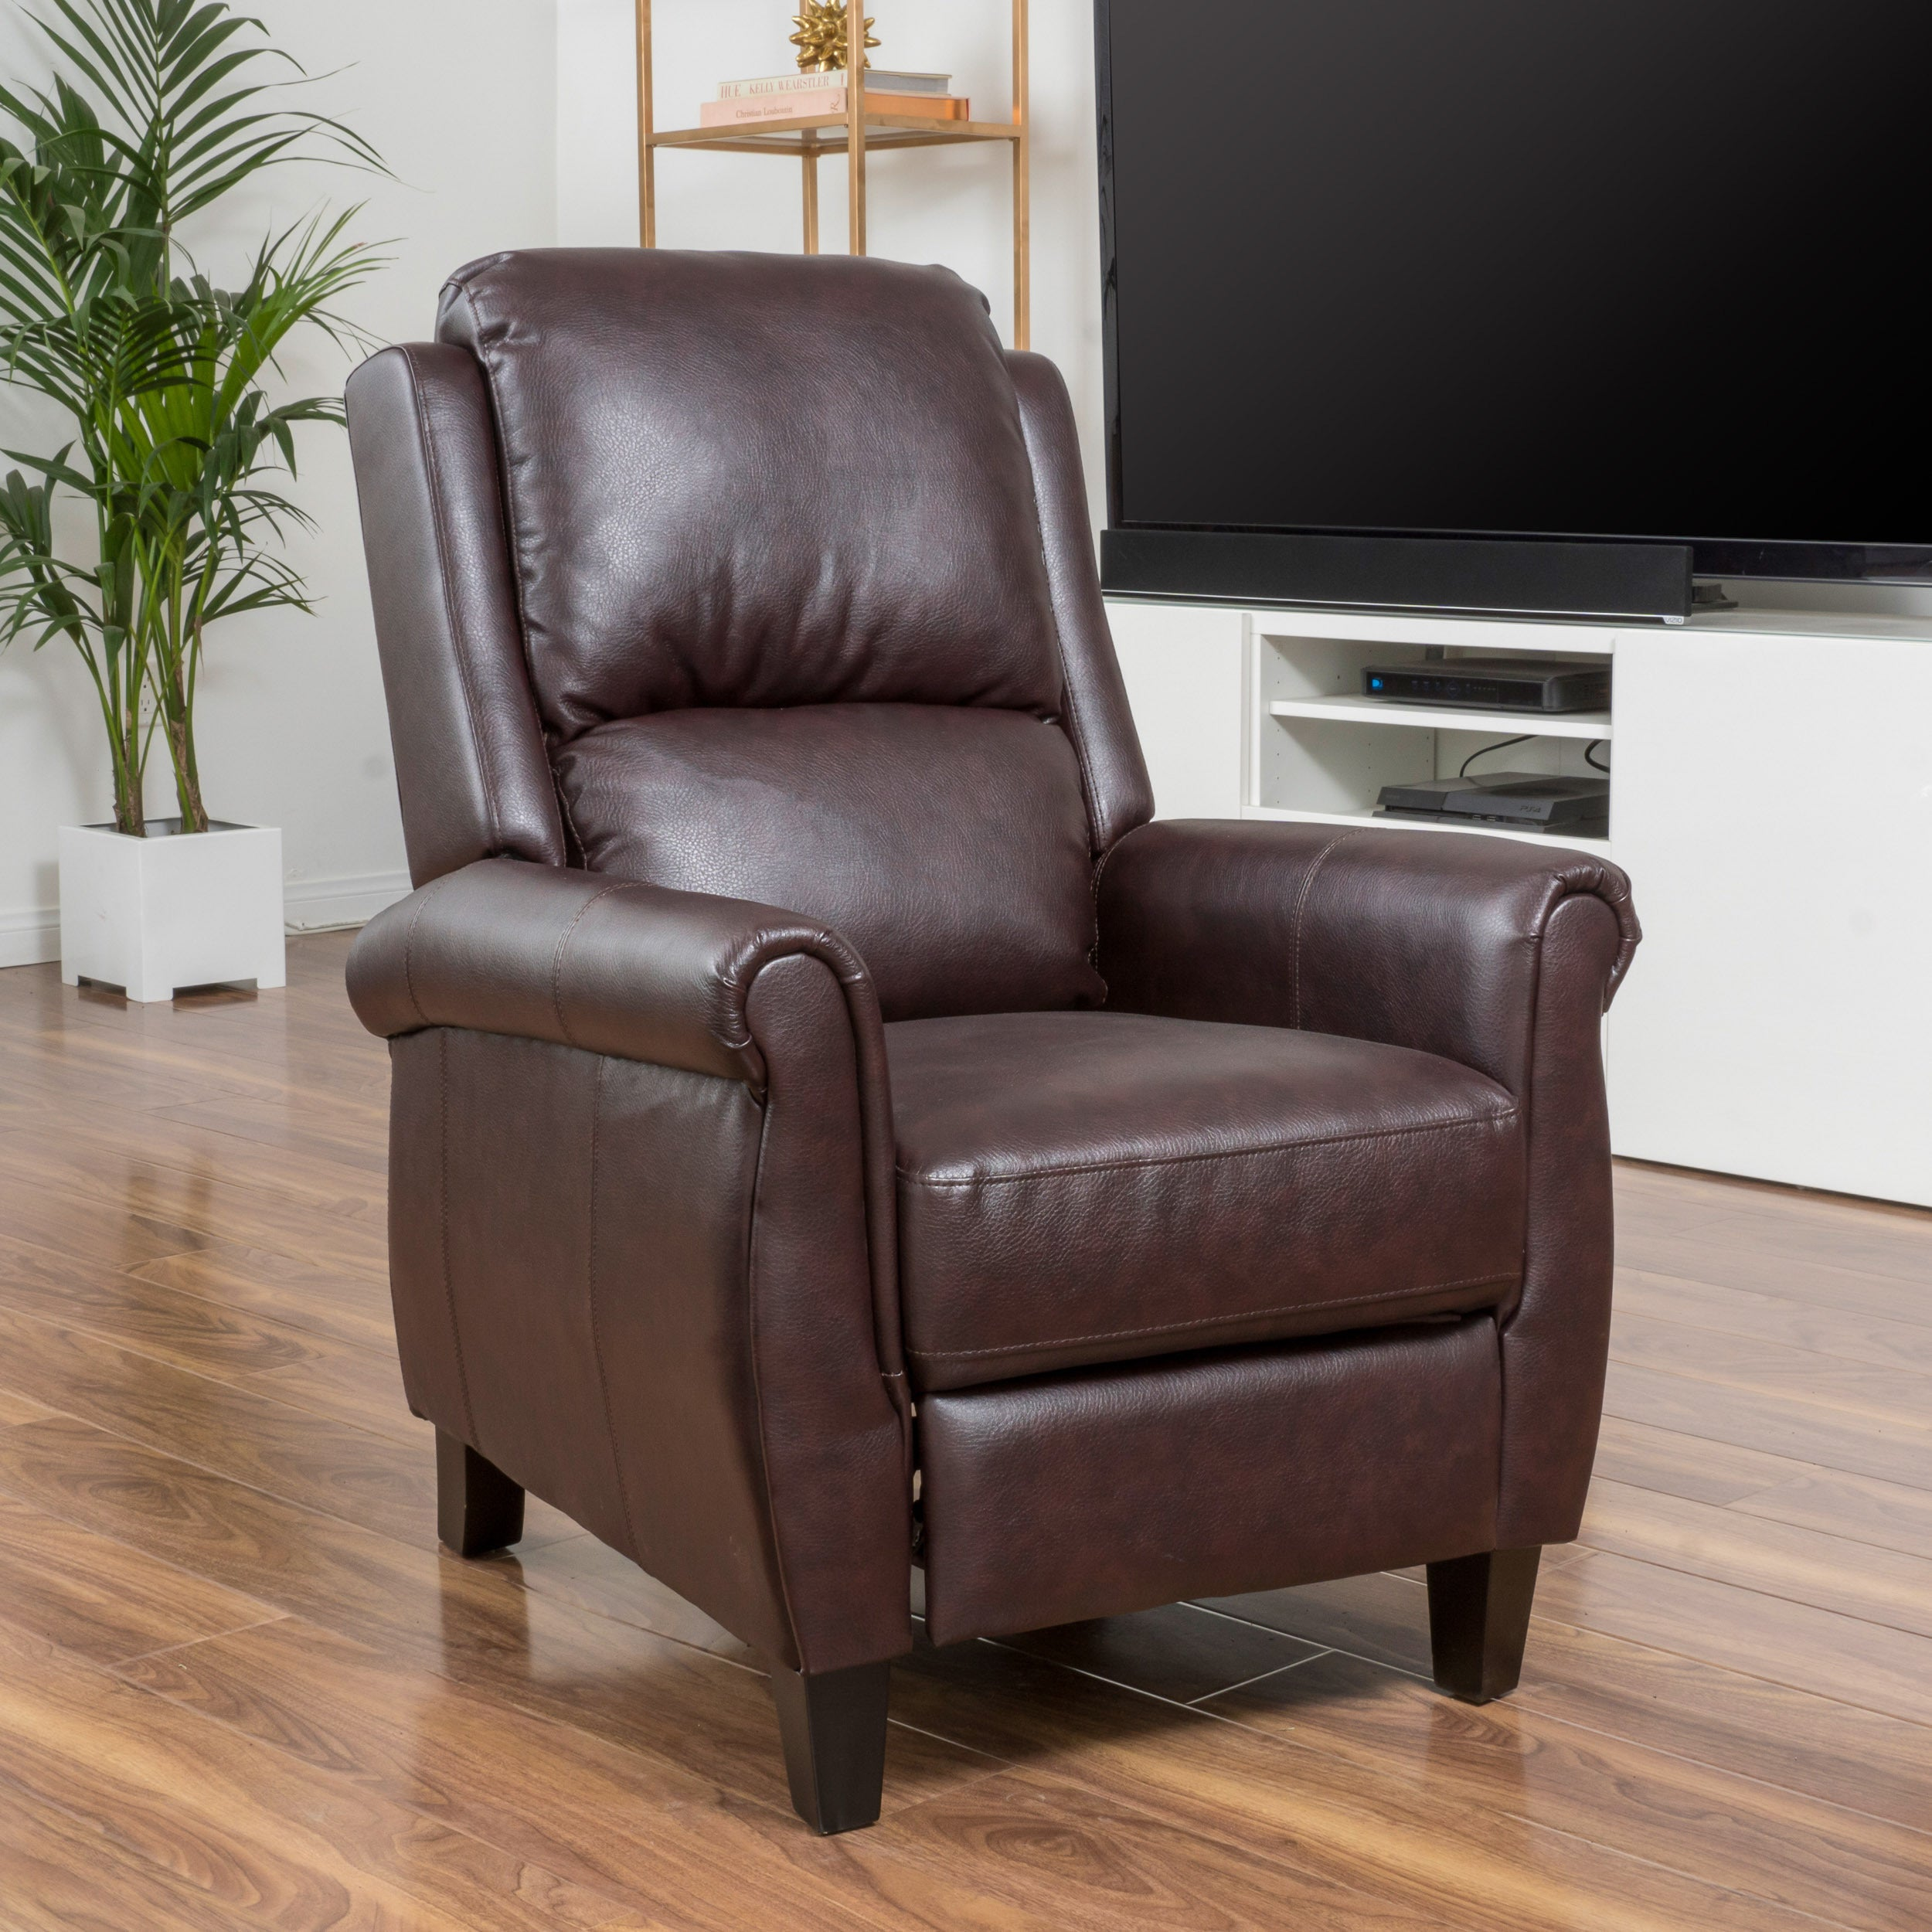 sofas miko ireland recliner leather and mika chairs footstools